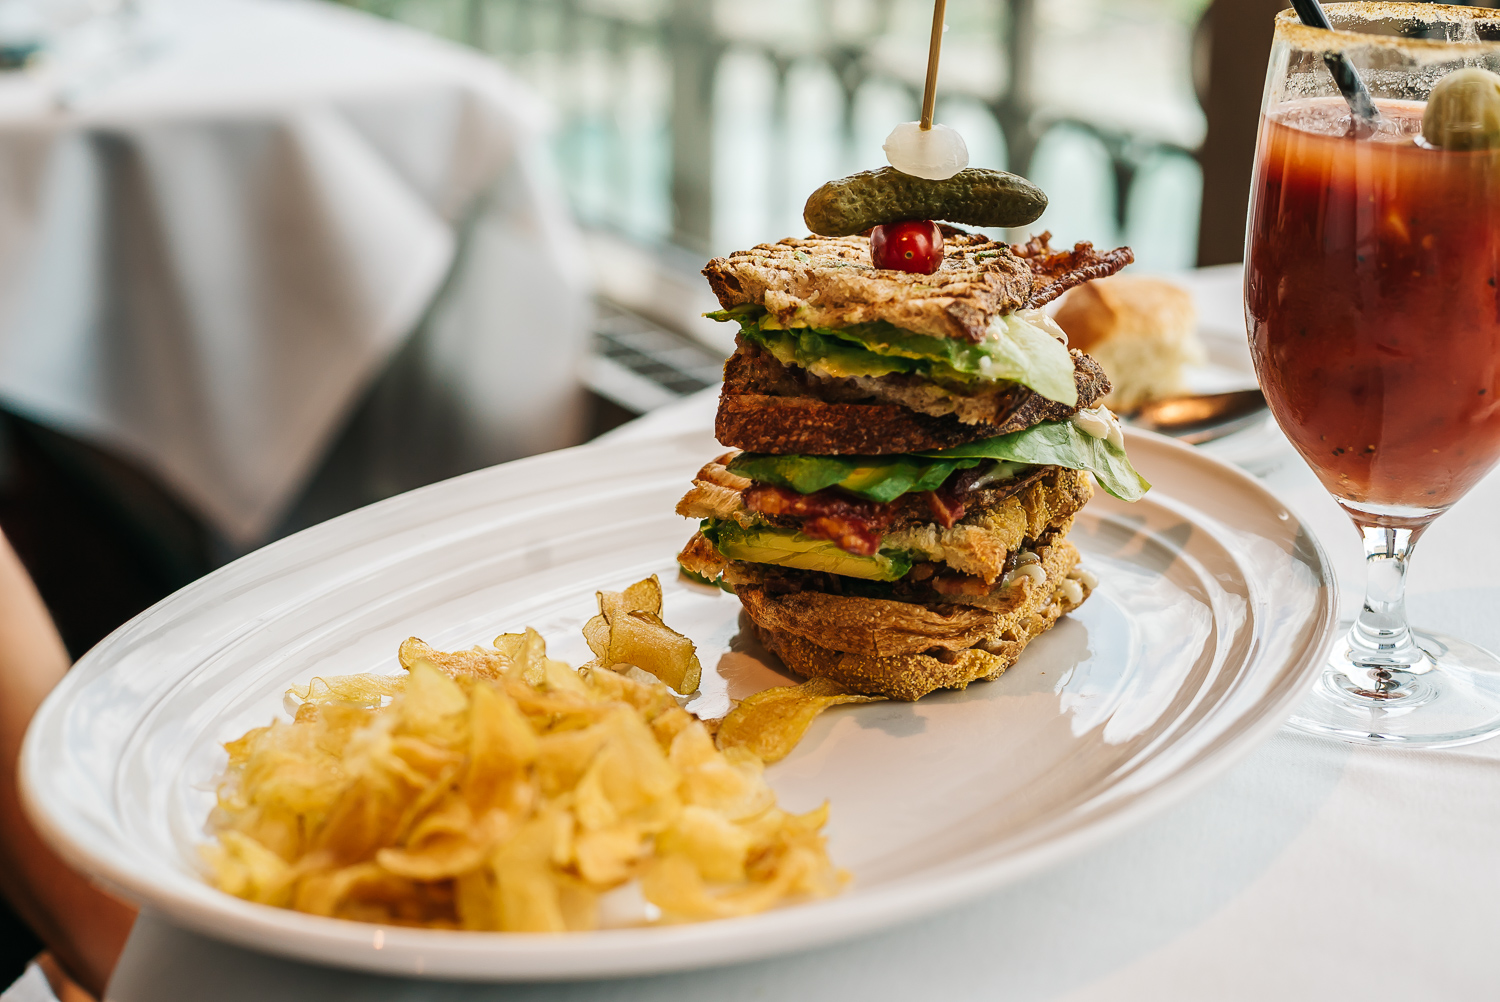 BLT tower sandwich with chips and Bloody Mary